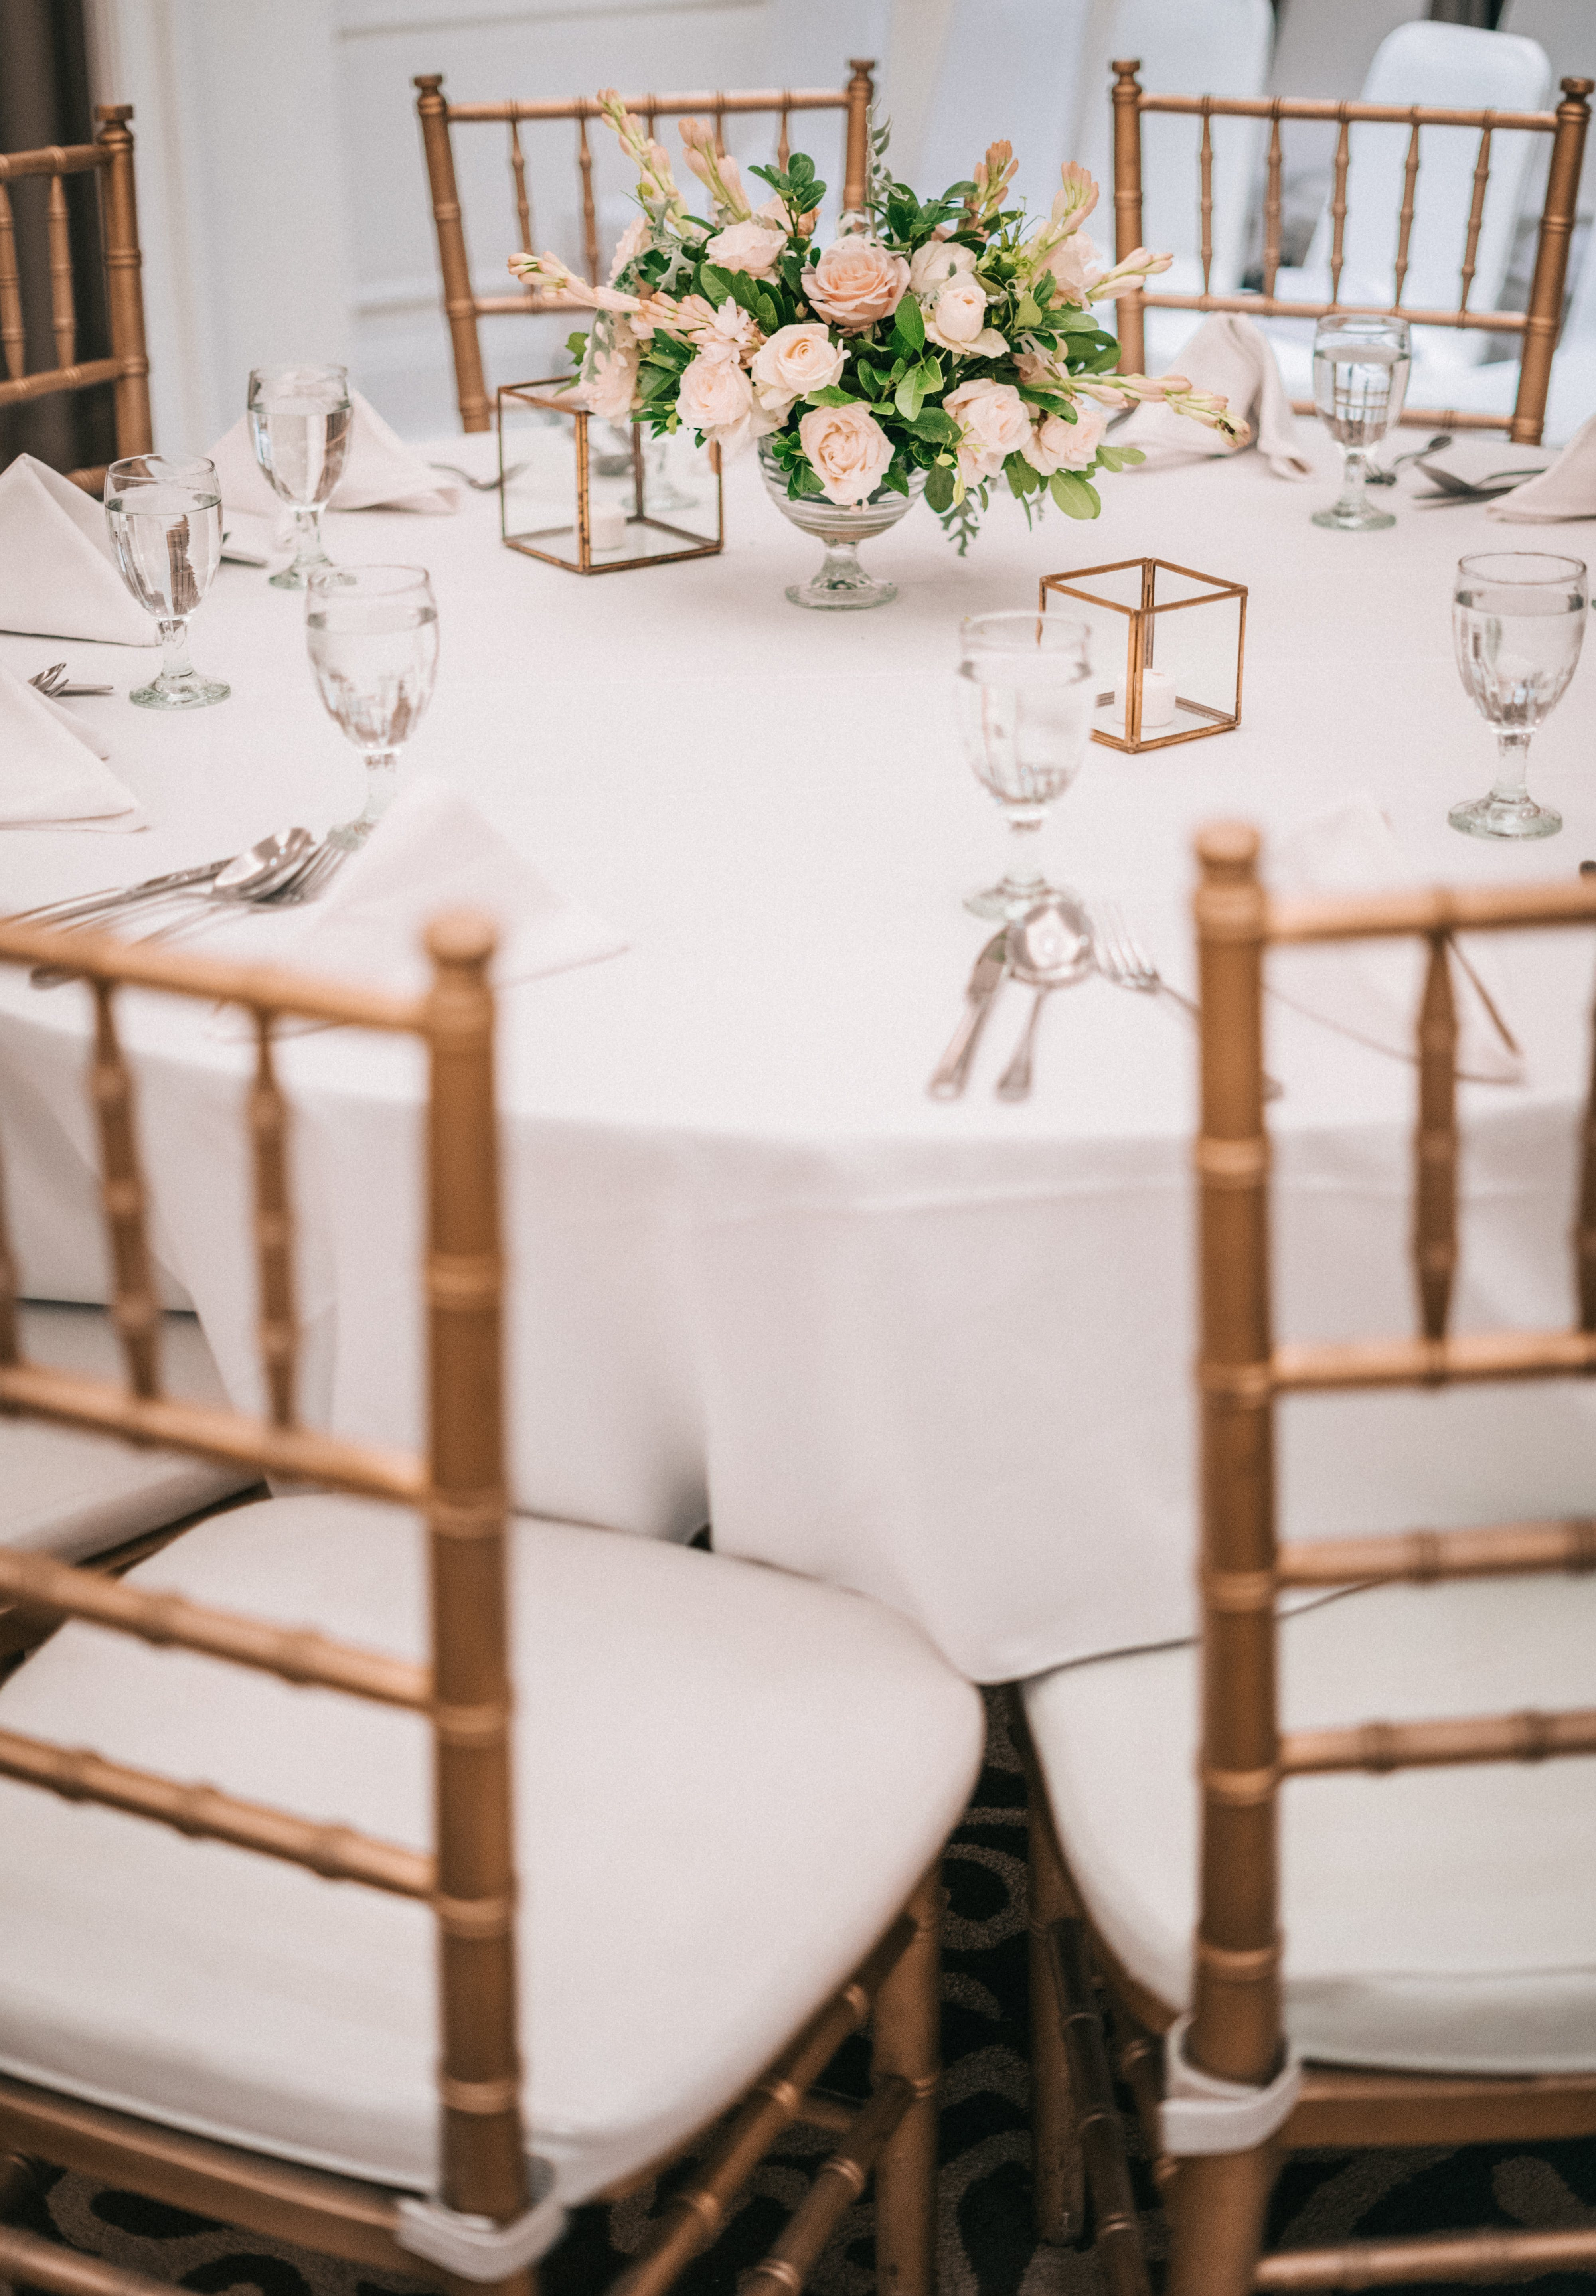 Flower Arrangement on Top of Table With Chairs